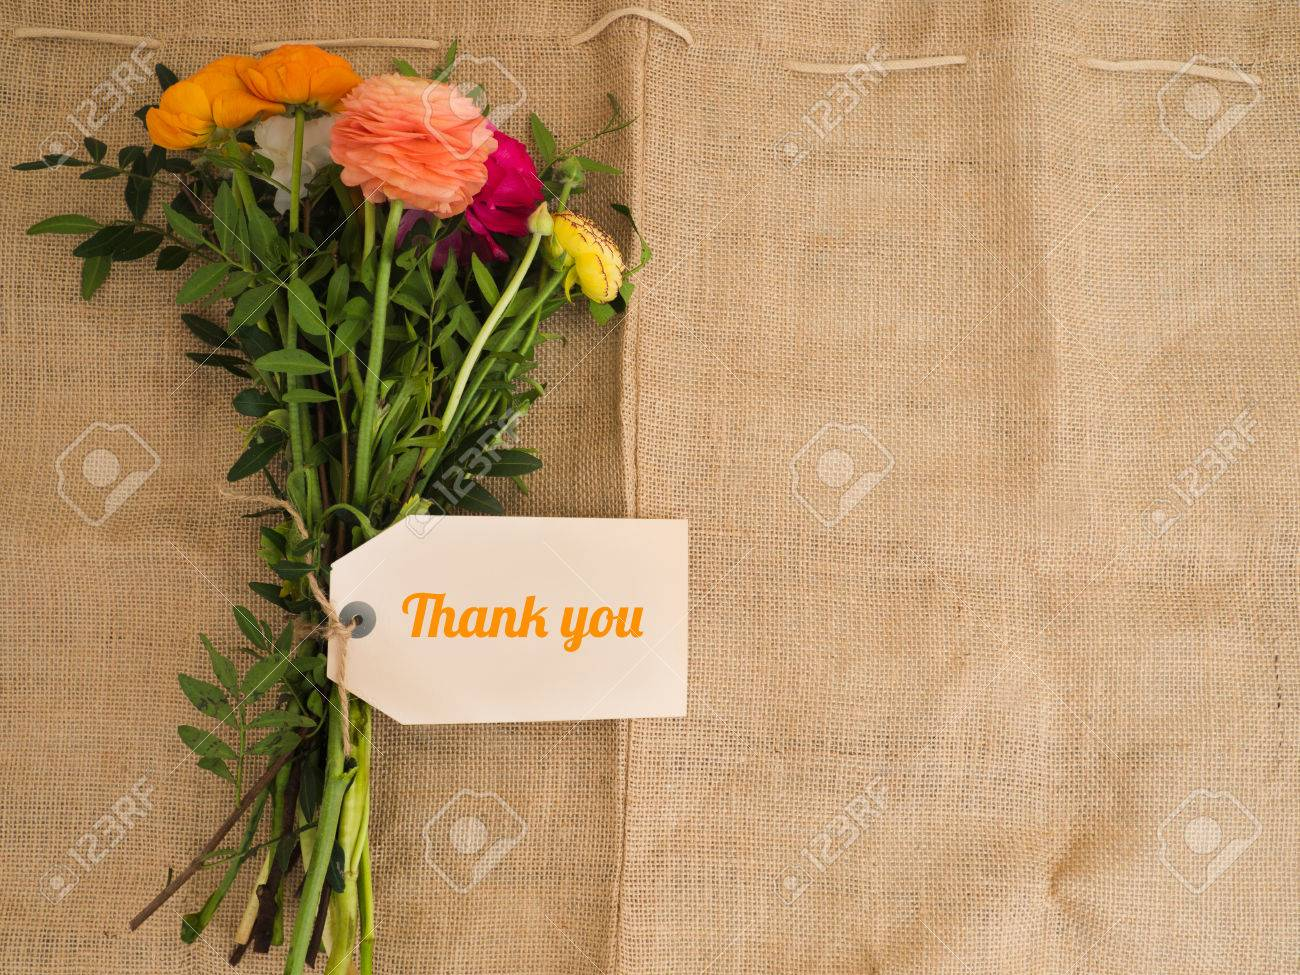 Thank You Beautiful Bouquet Of Flowers With A Message On Jute